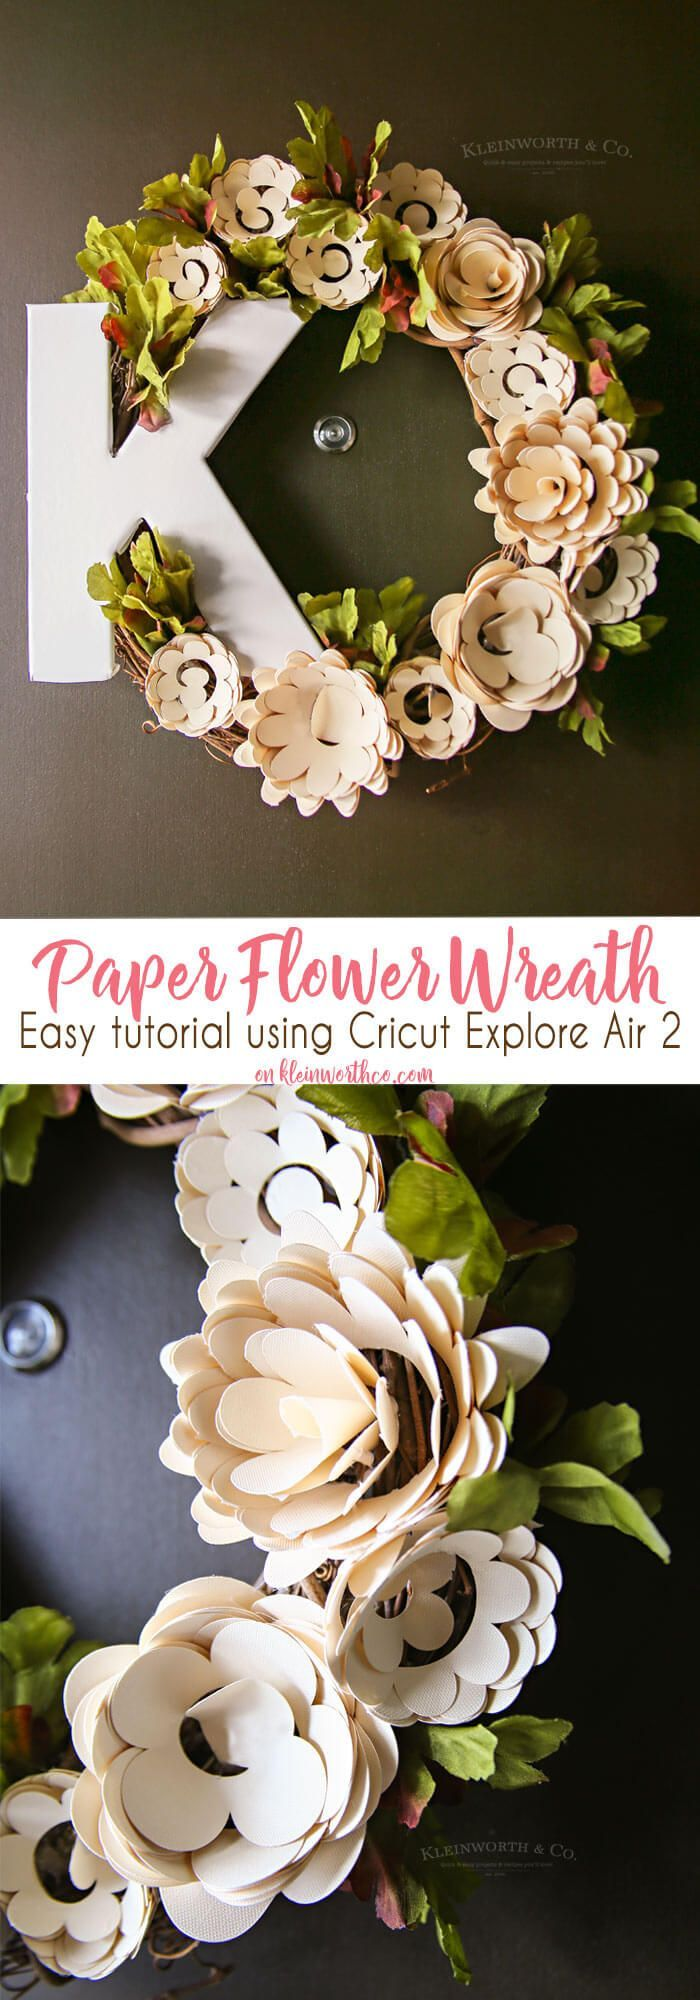 Paper Flower Wreath Cricut Tutorial is a super fun way to dress up your door for spring! Check out my super easy how-to with Cricut Explore Air 2.